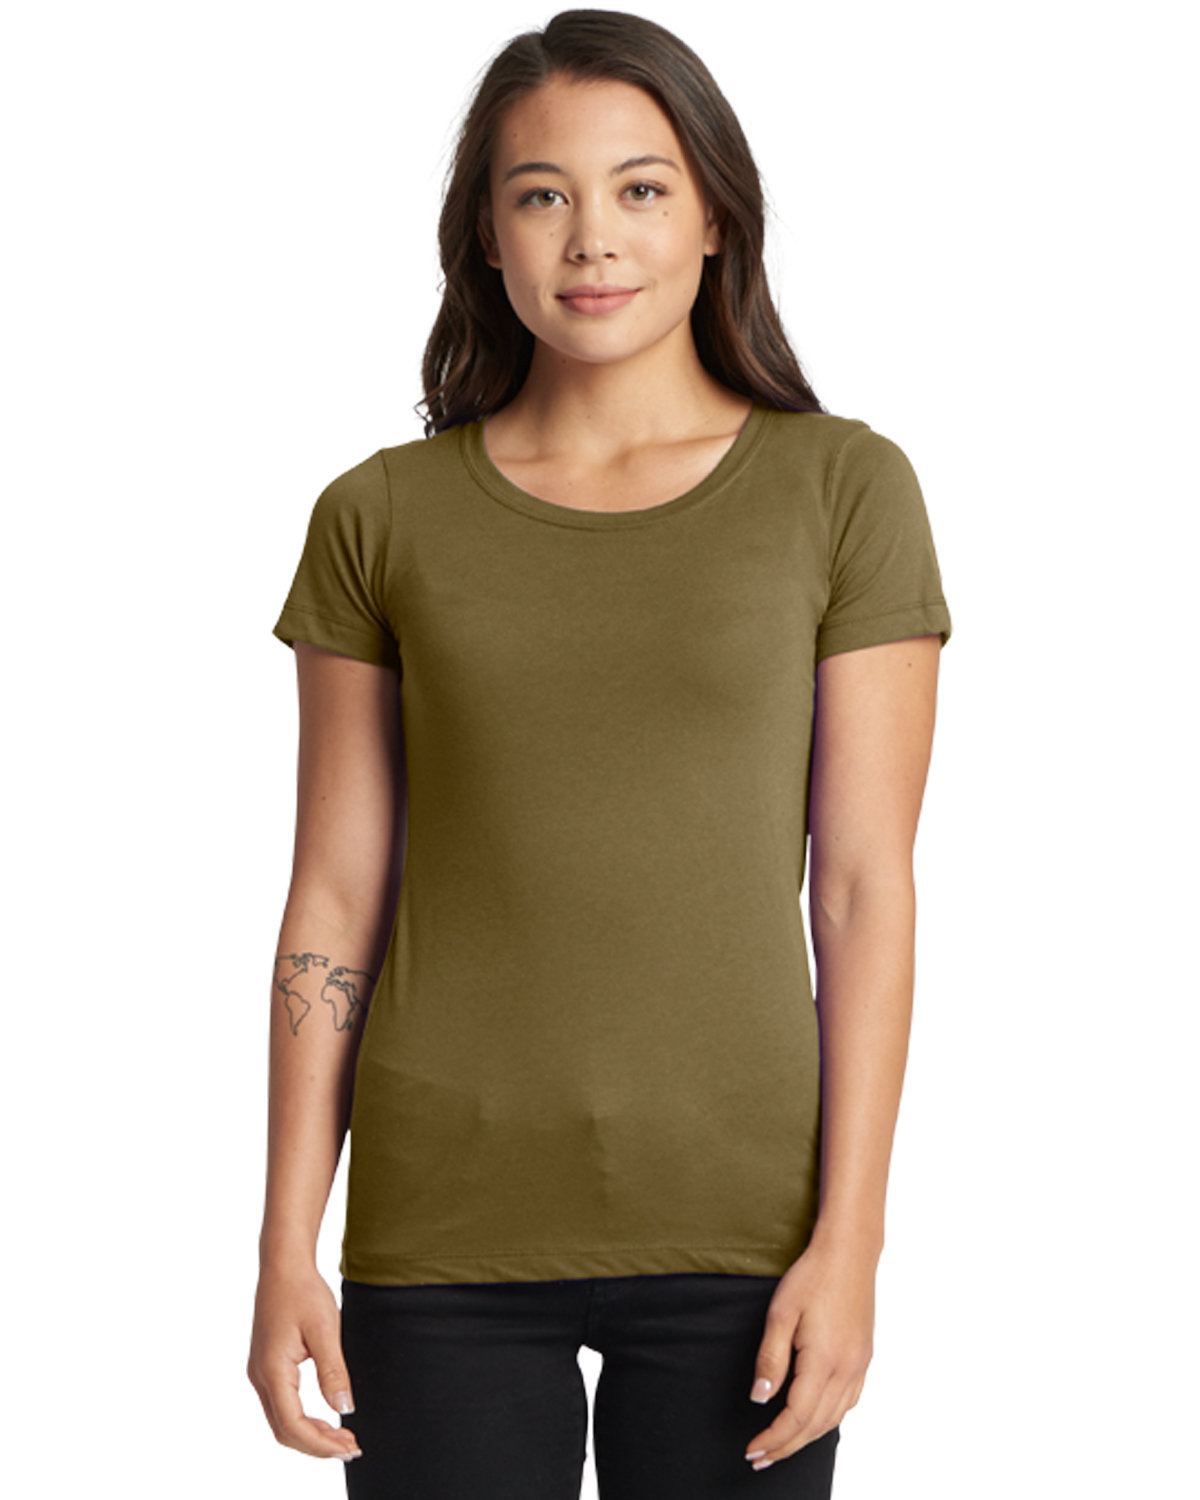 Next Level Ladies' Ideal T-Shirt MILITARY GREEN